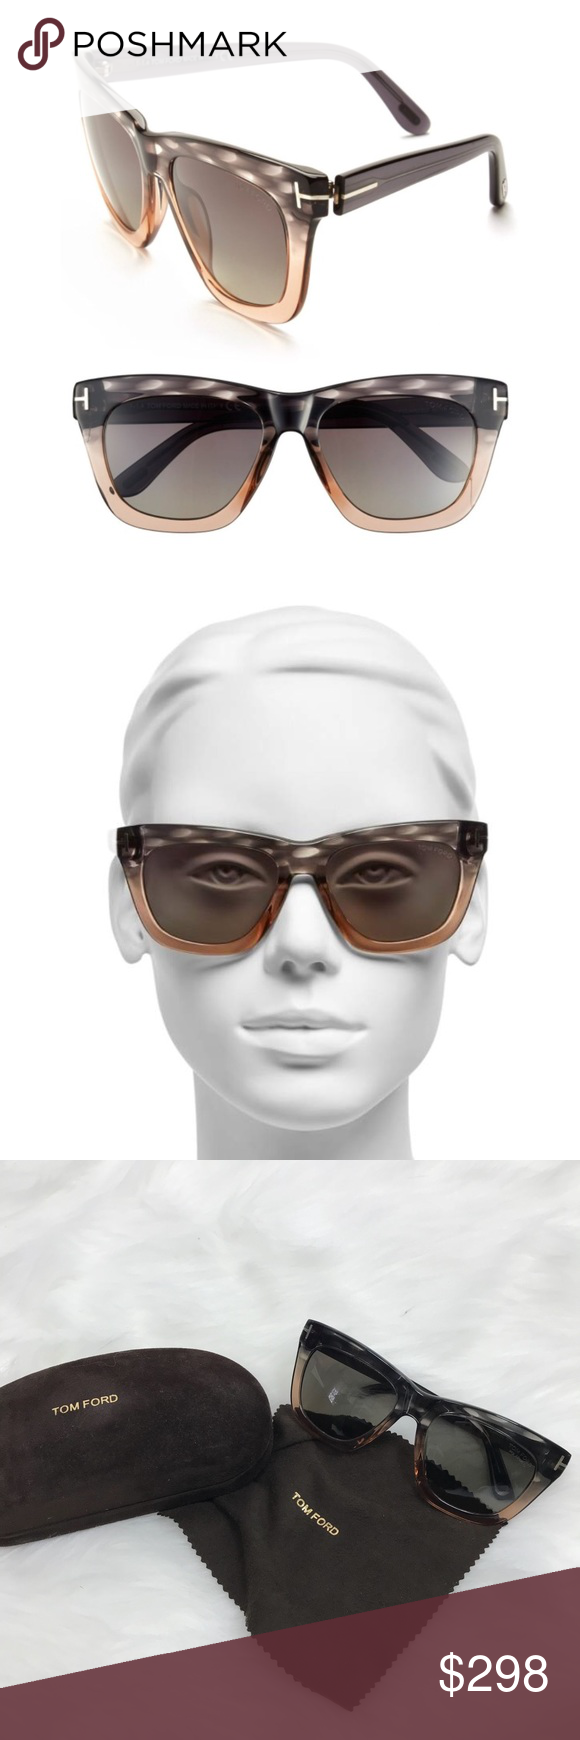 18fc038cd59d Tom Ford Celina 55mm Polarized Sunglasses Tom Ford Celina 55mm Polarized  Sunglasses! The perfect style